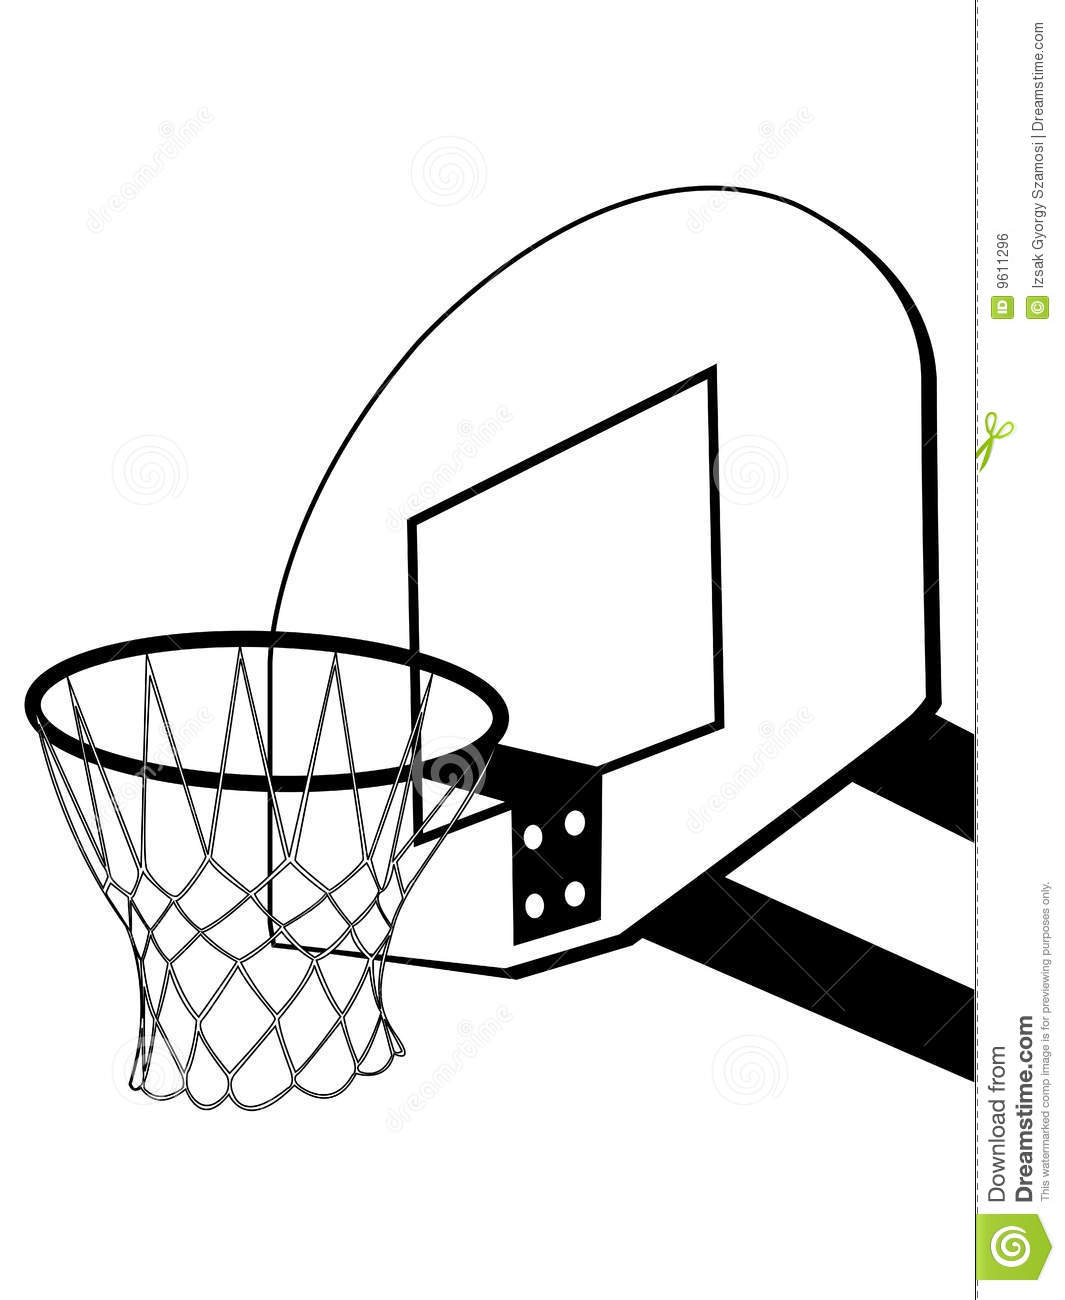 Basketball Backboard Silhouette Stock Vector